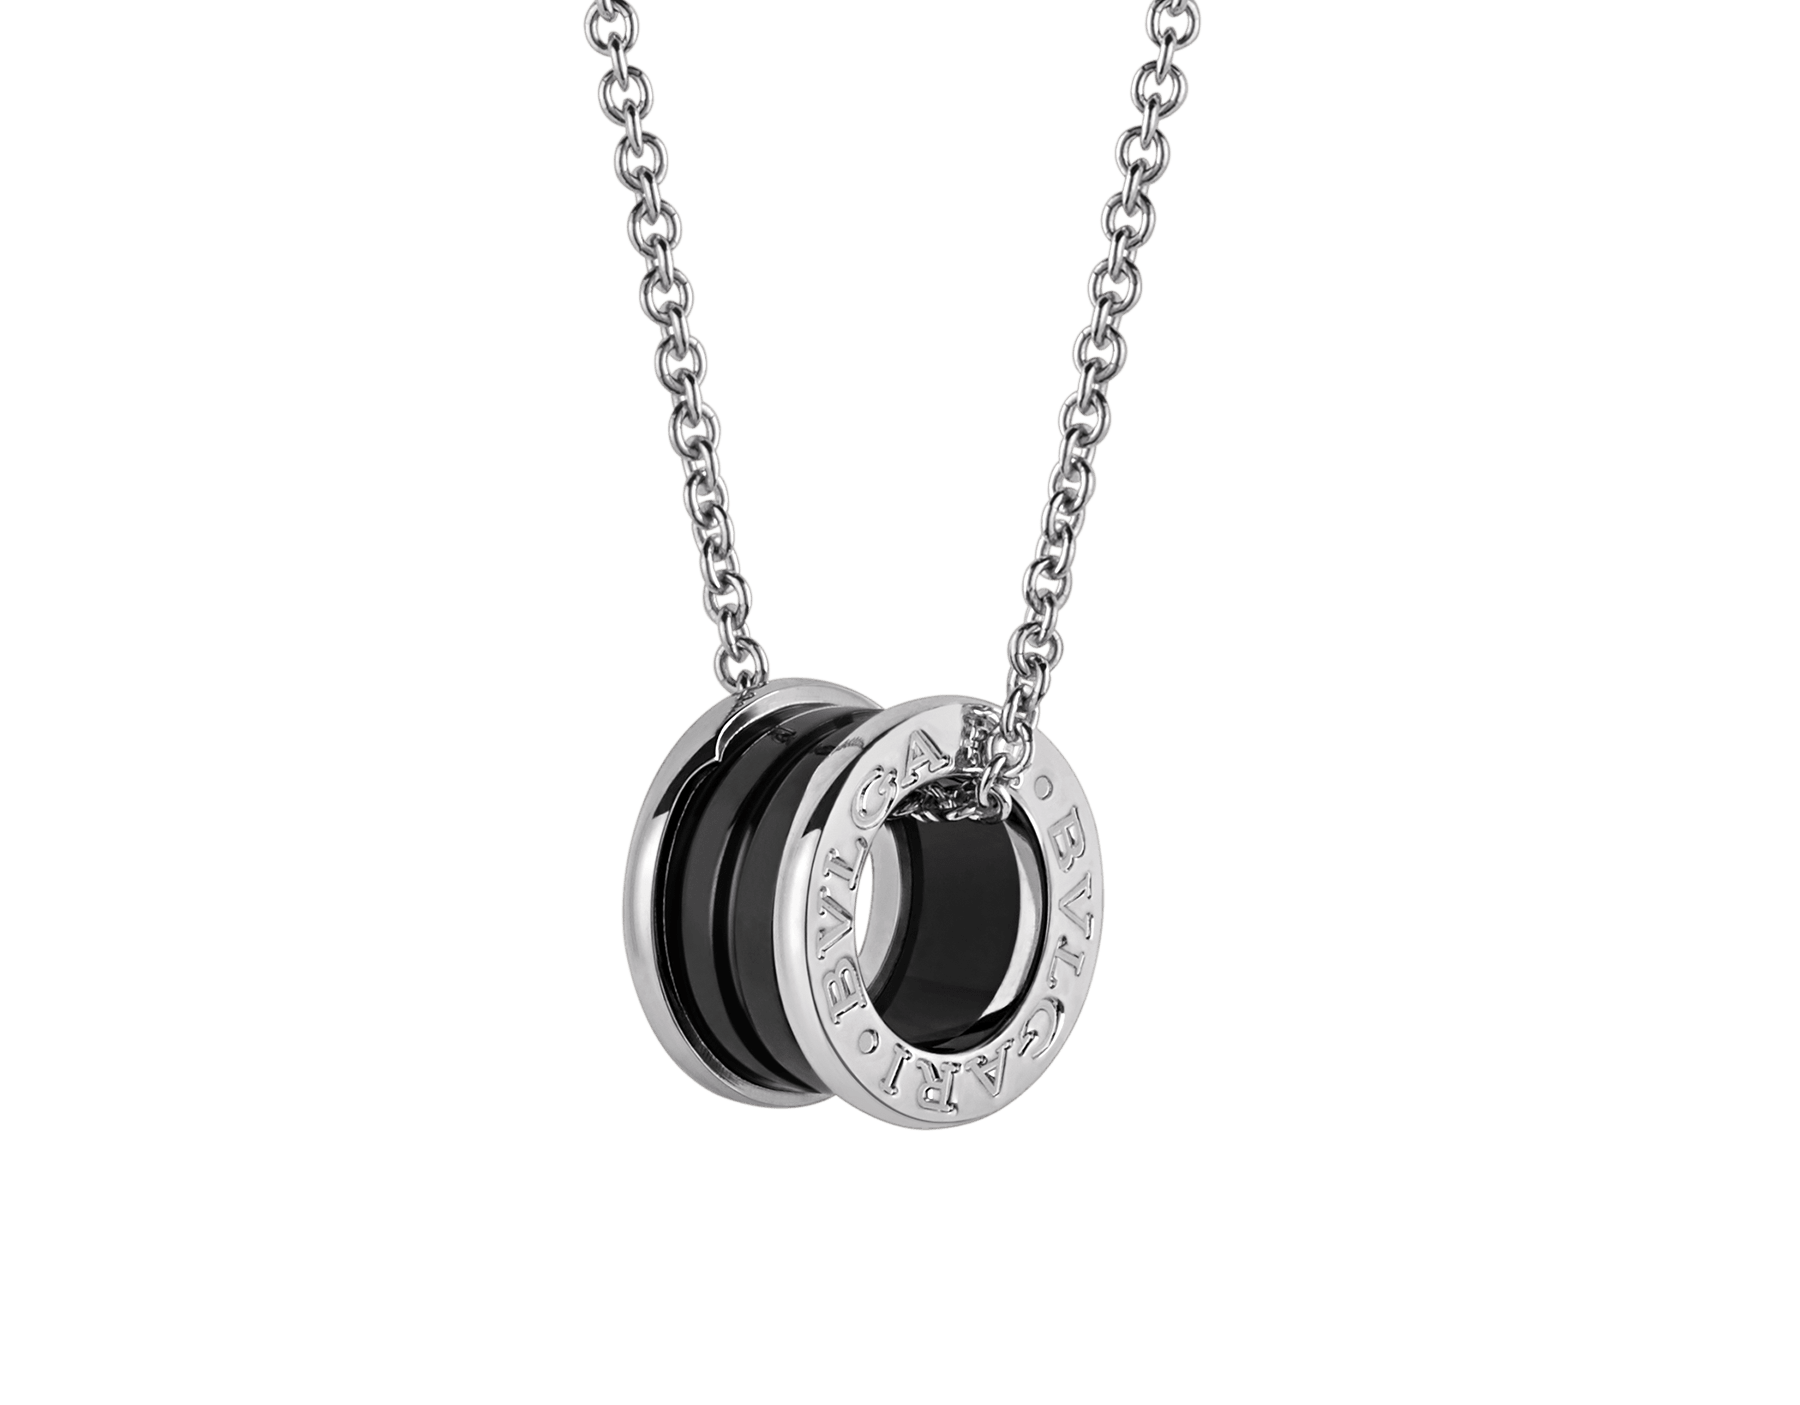 Save the Children necklace with sterling silver and black ceramic pendant, and sterling silver chain 349634 image 1